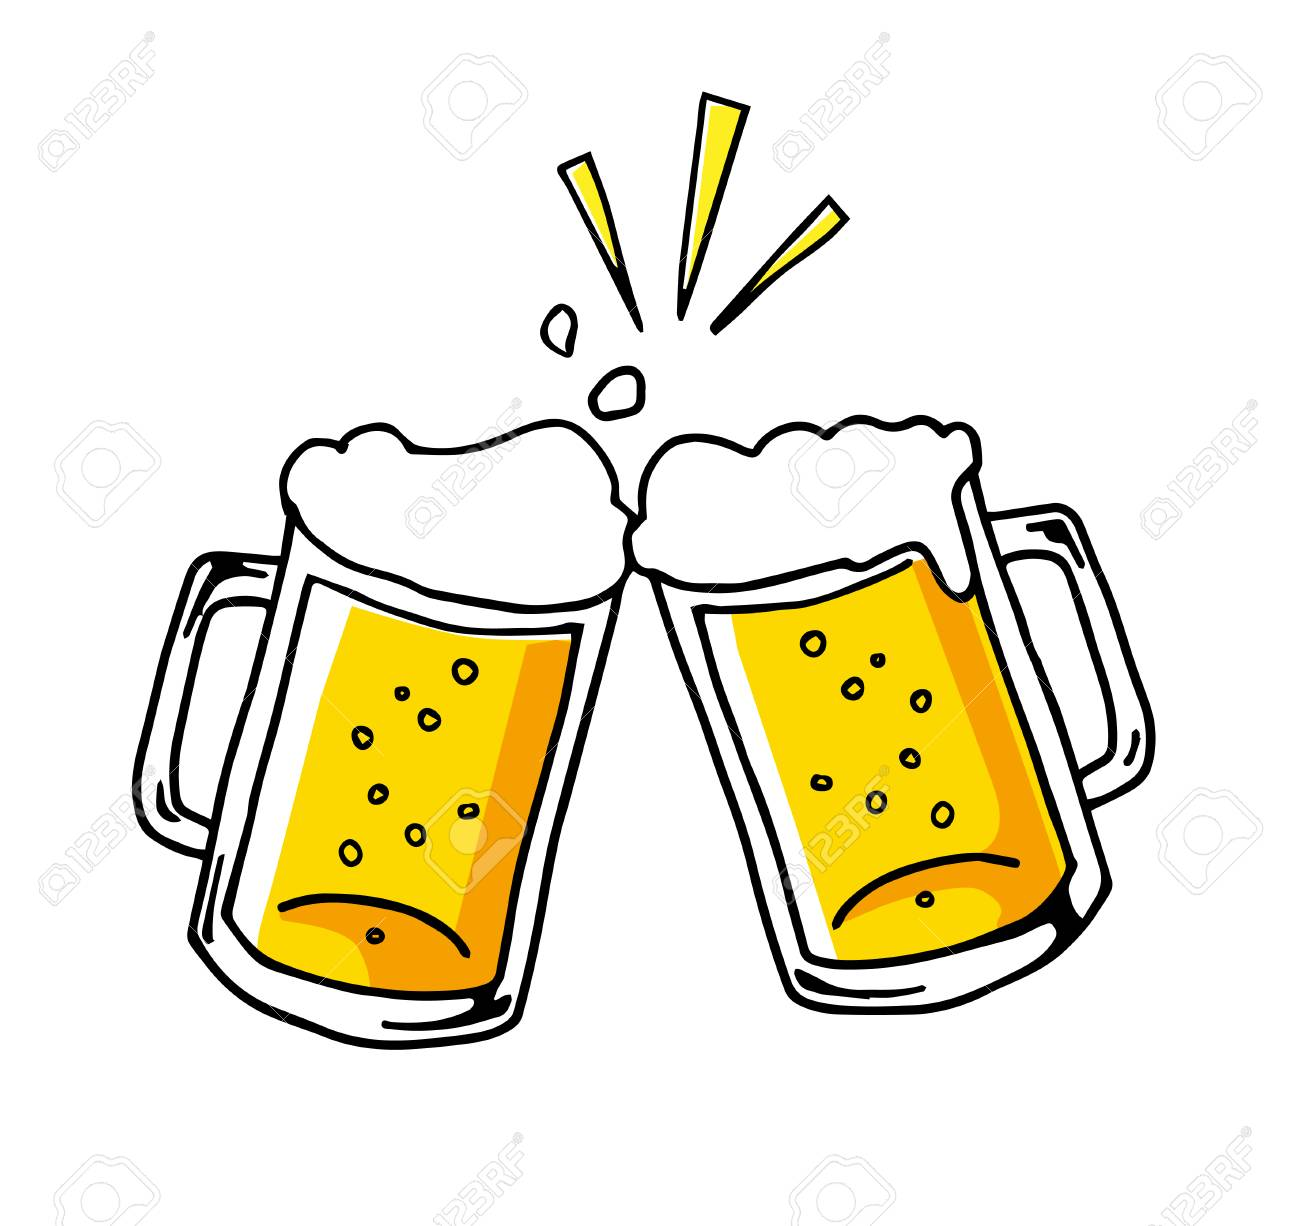 Cheers With Beer Icon Hand-drawn Royalty Free Cliparts, Vectors, And Stock Illustration. Image 126272332.